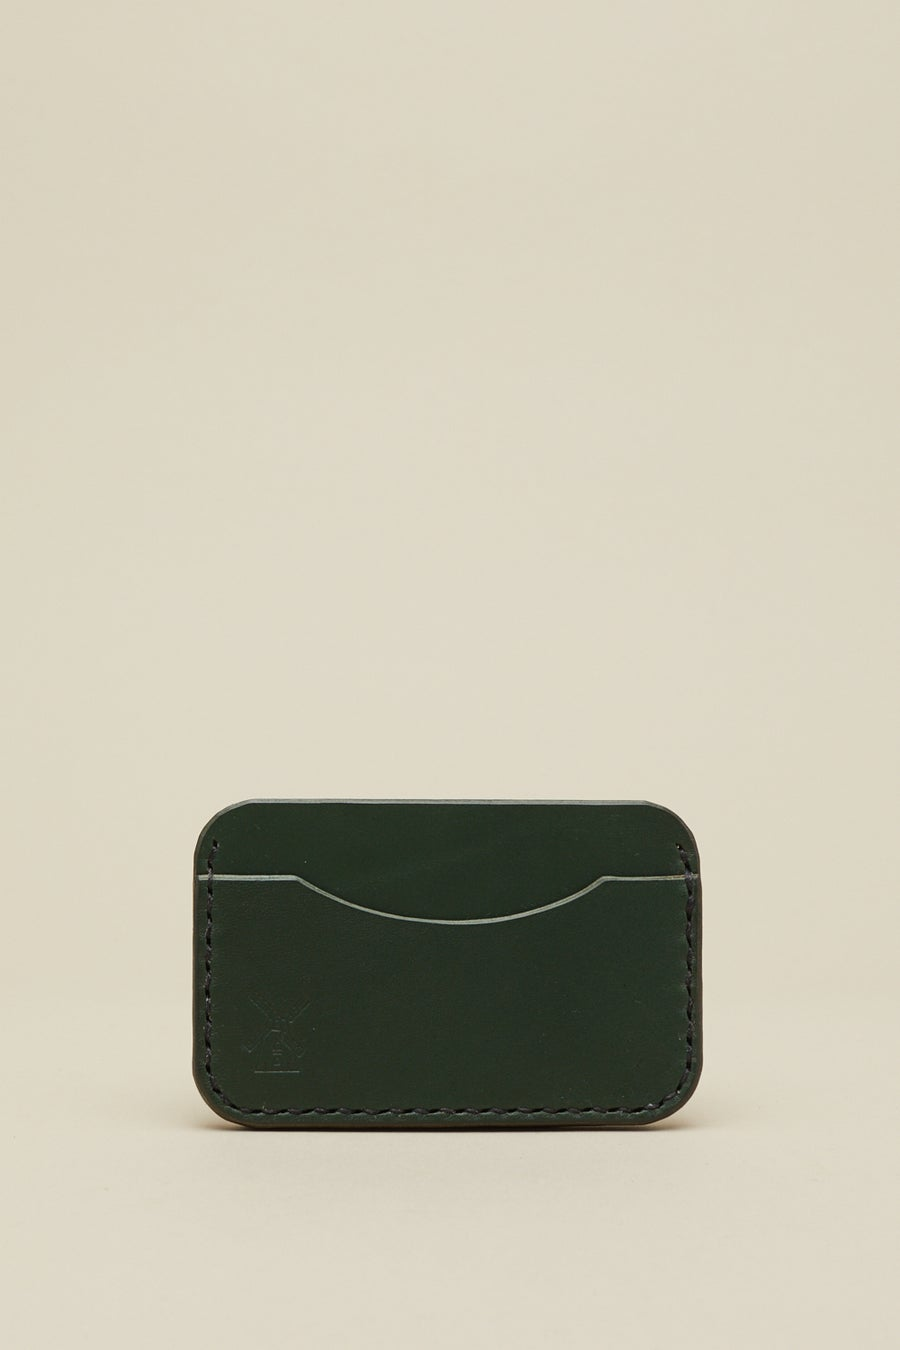 Image of Card Holder in Racing Green